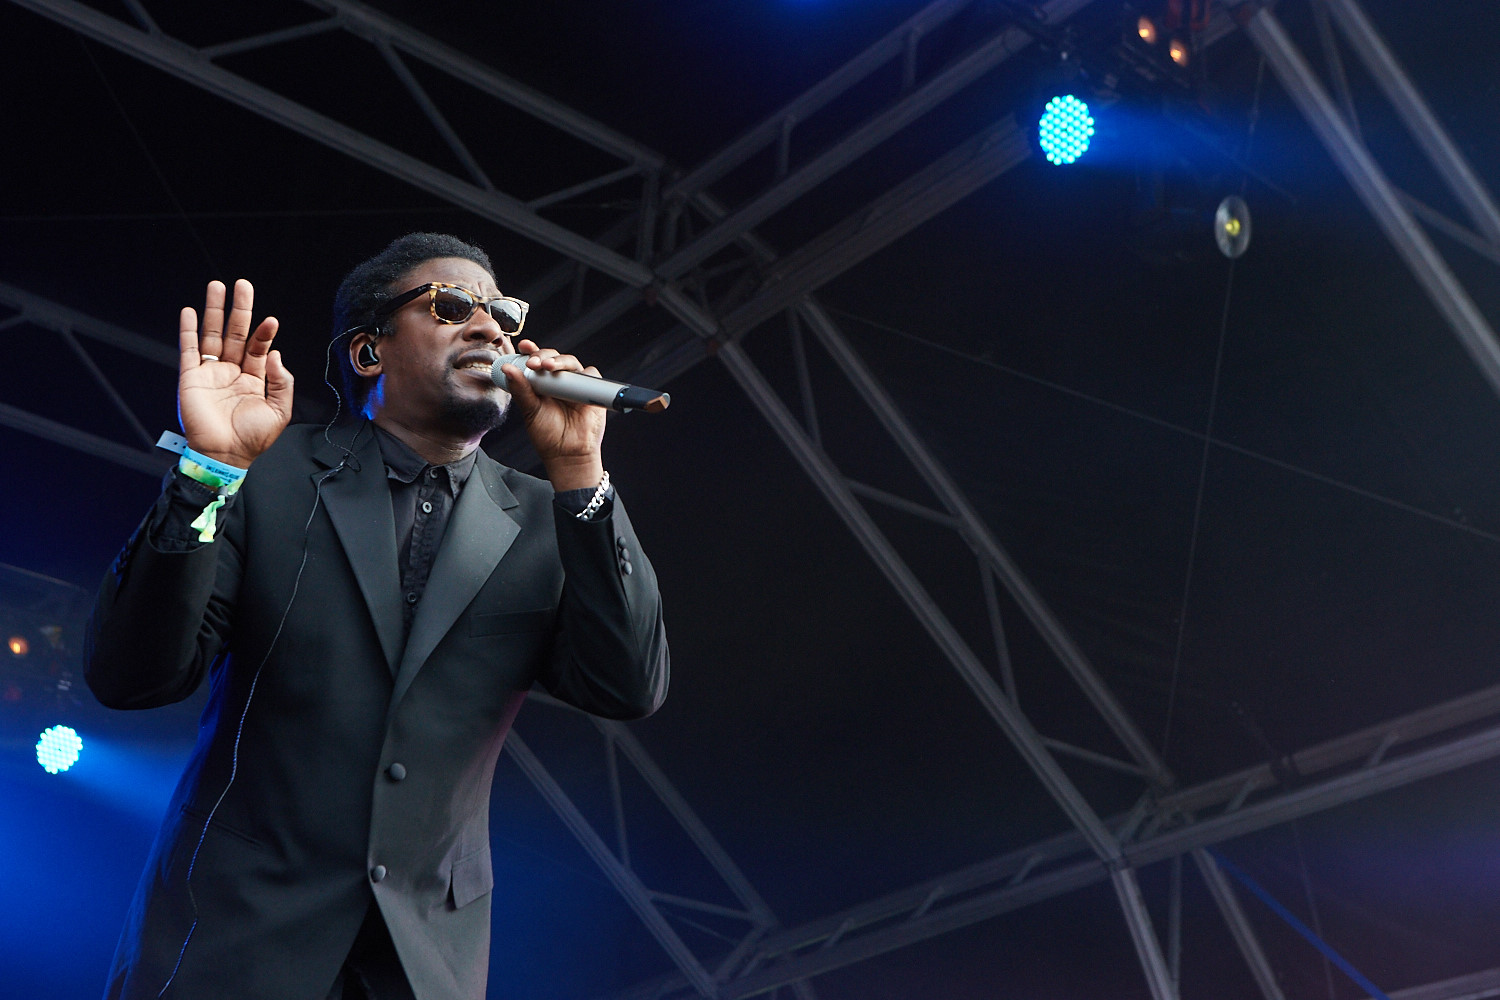 20th June 2015. Roots Manuva plays Barclaycard British Summertime in London's Hyde Park.